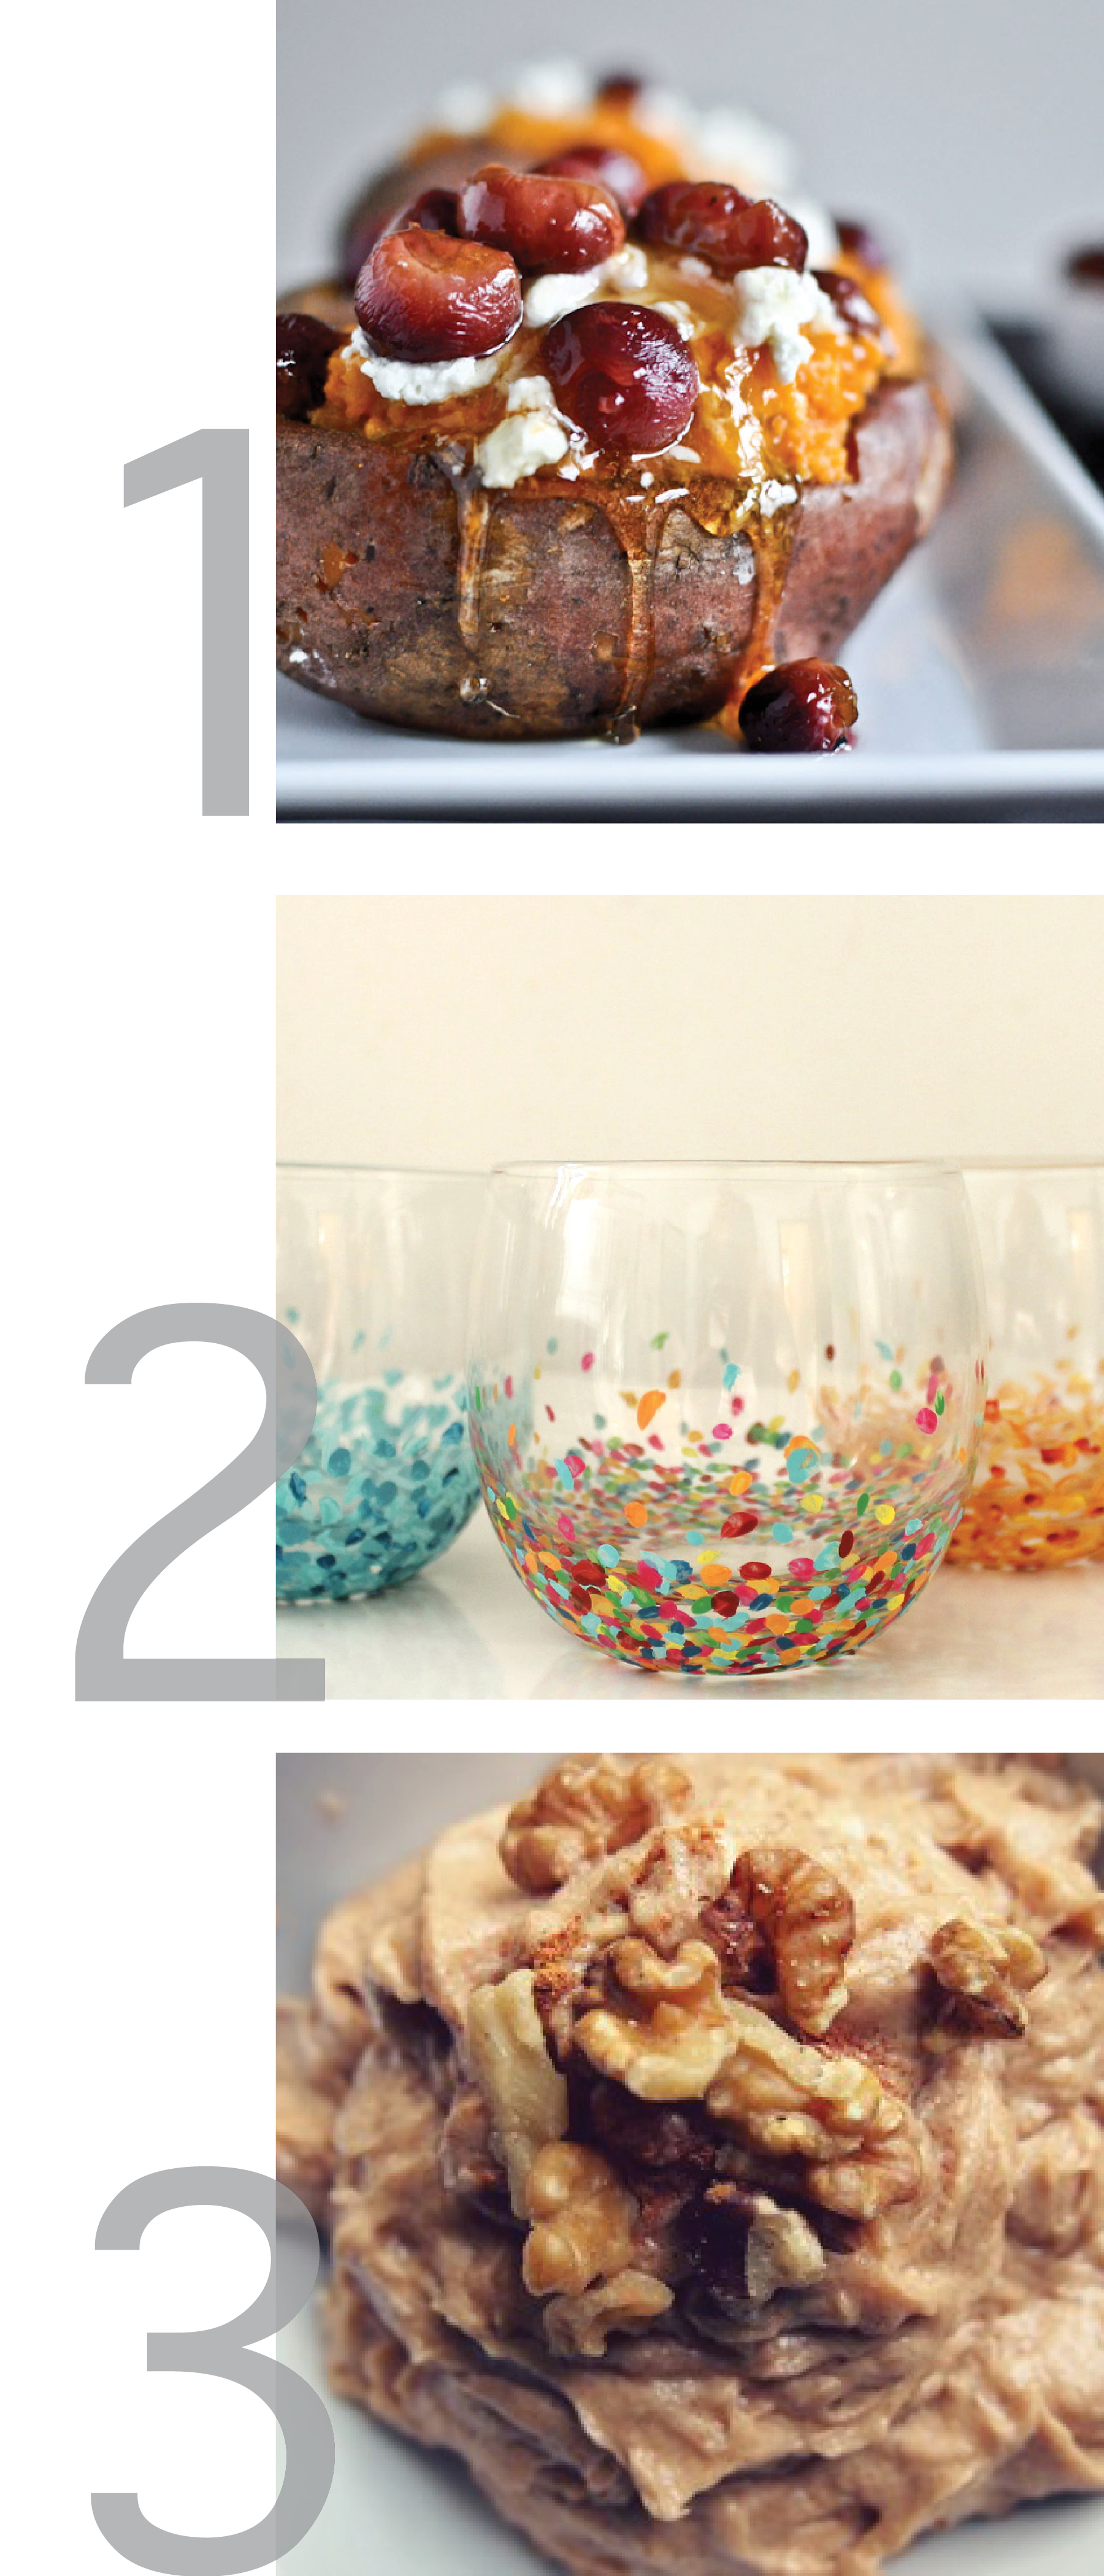 This photo is a clean graphic showing photos of my latest pinsperation: stuffed sweet potatoes, diy confetti glasses and banana bread dip.